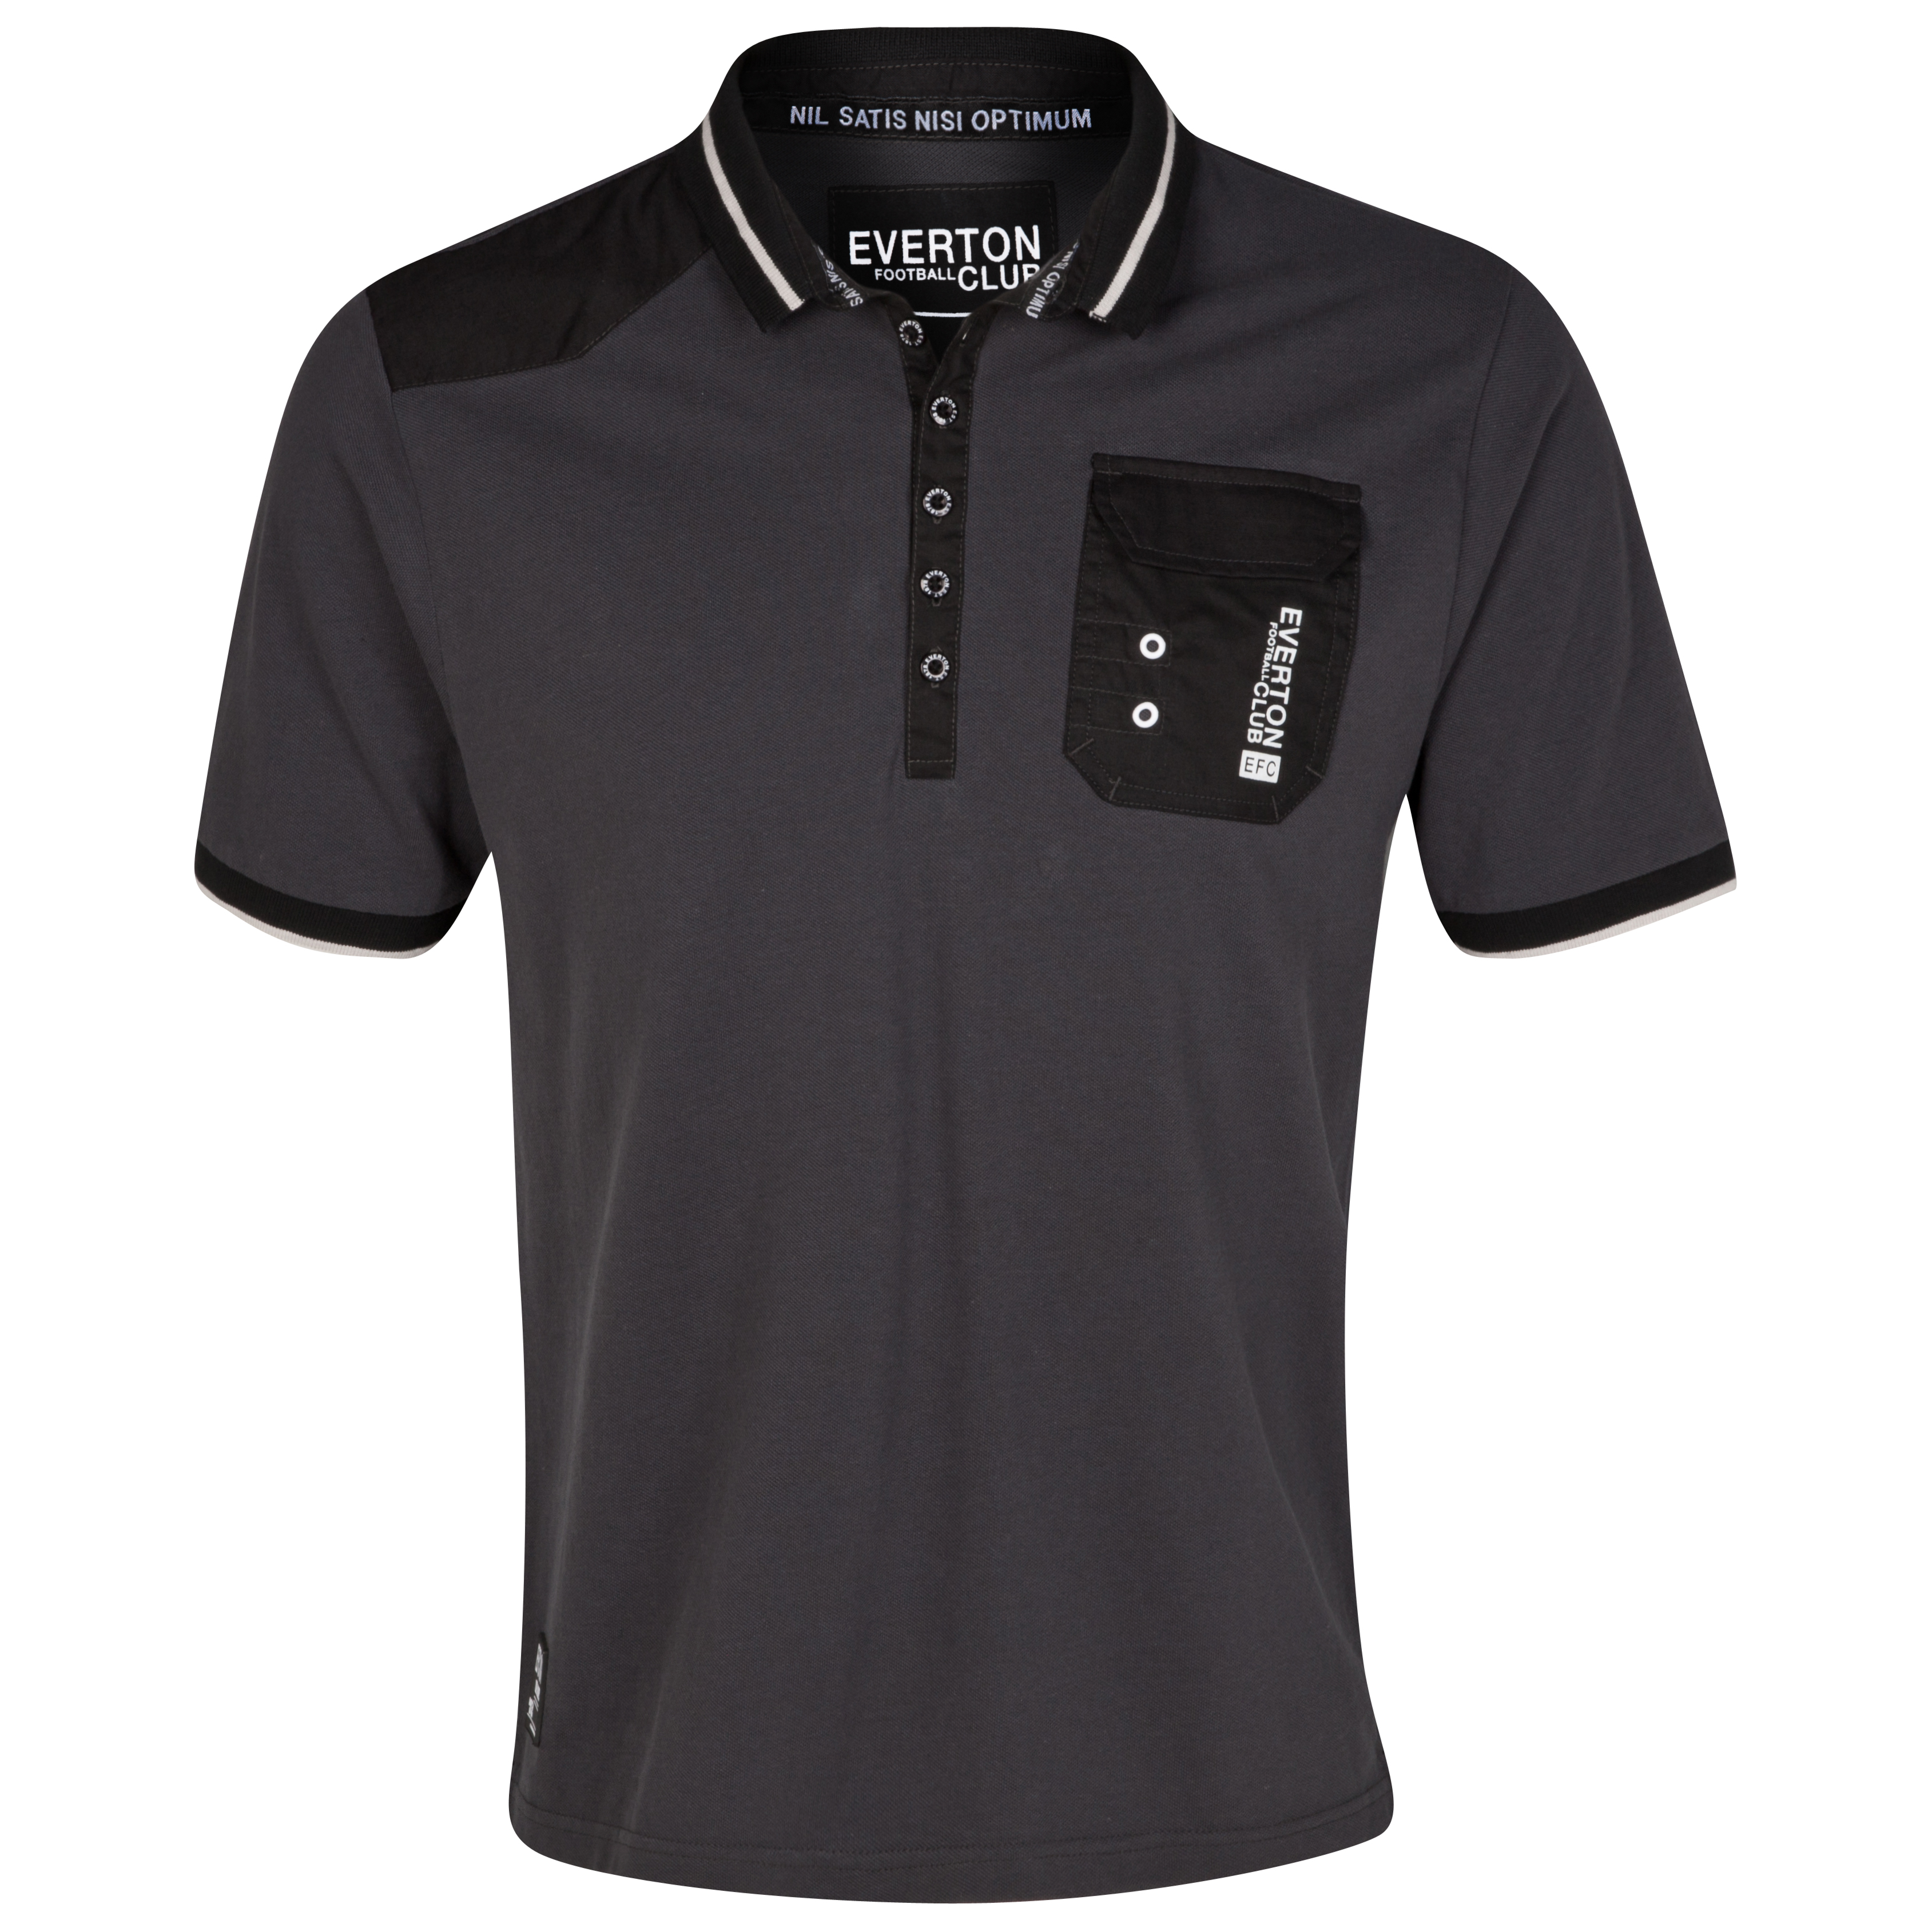 Everton Patch Polo Top - Charcoal